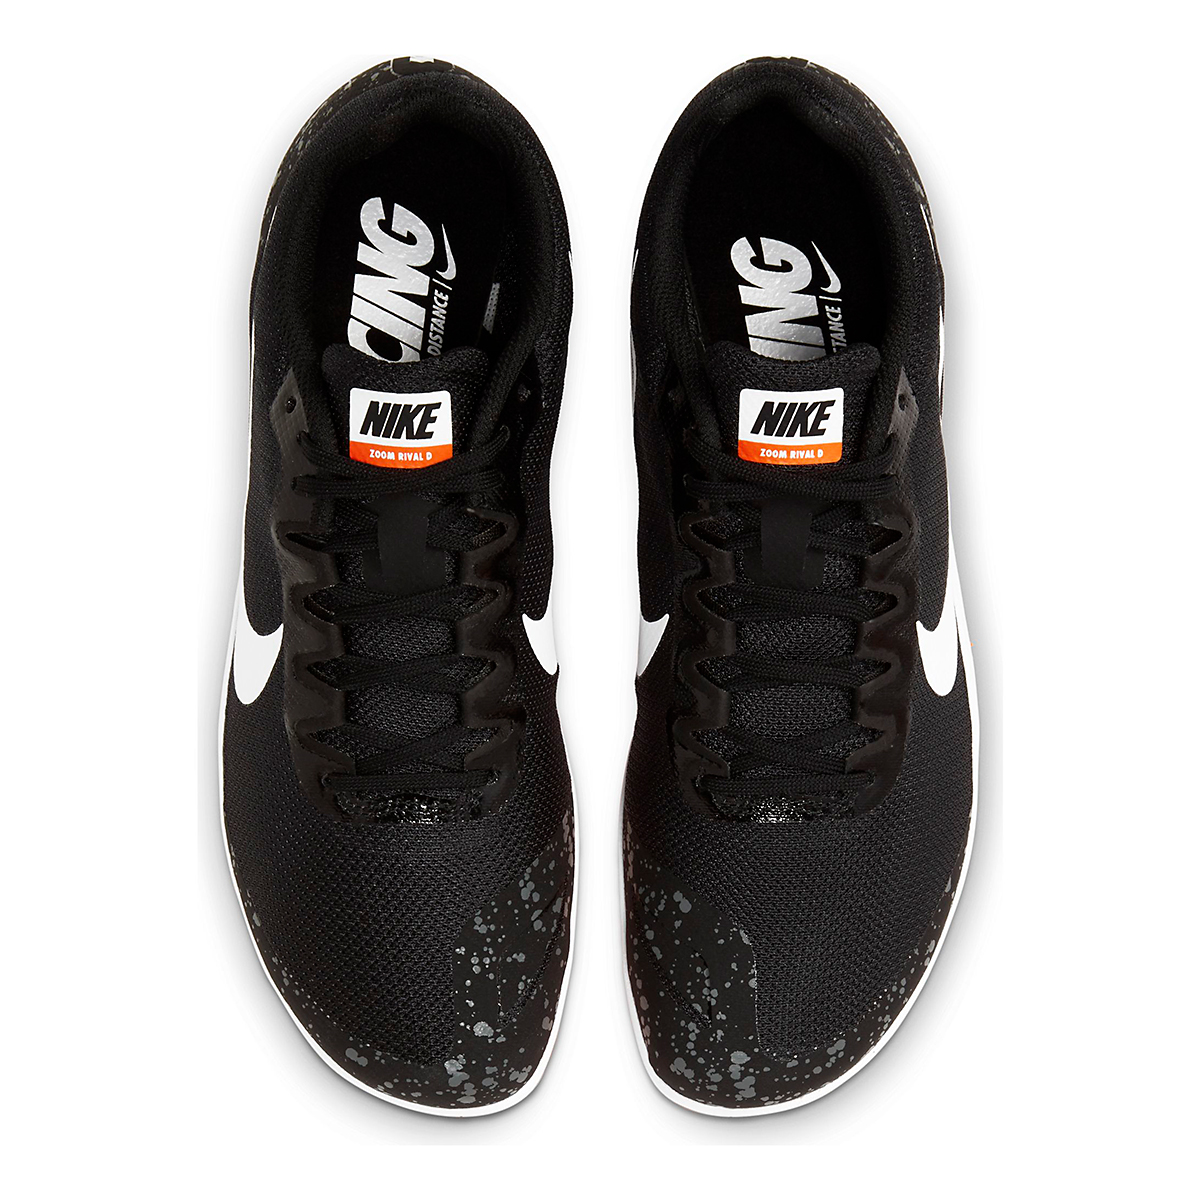 Nike Zoom Rival D 10 Track Spikes - Color: Black/White/Iron Grey/Hyper Crimson - Size: M4/W5.5 - Width: Regular, Black/White/Iron Grey/Hyper Crimson, large, image 5